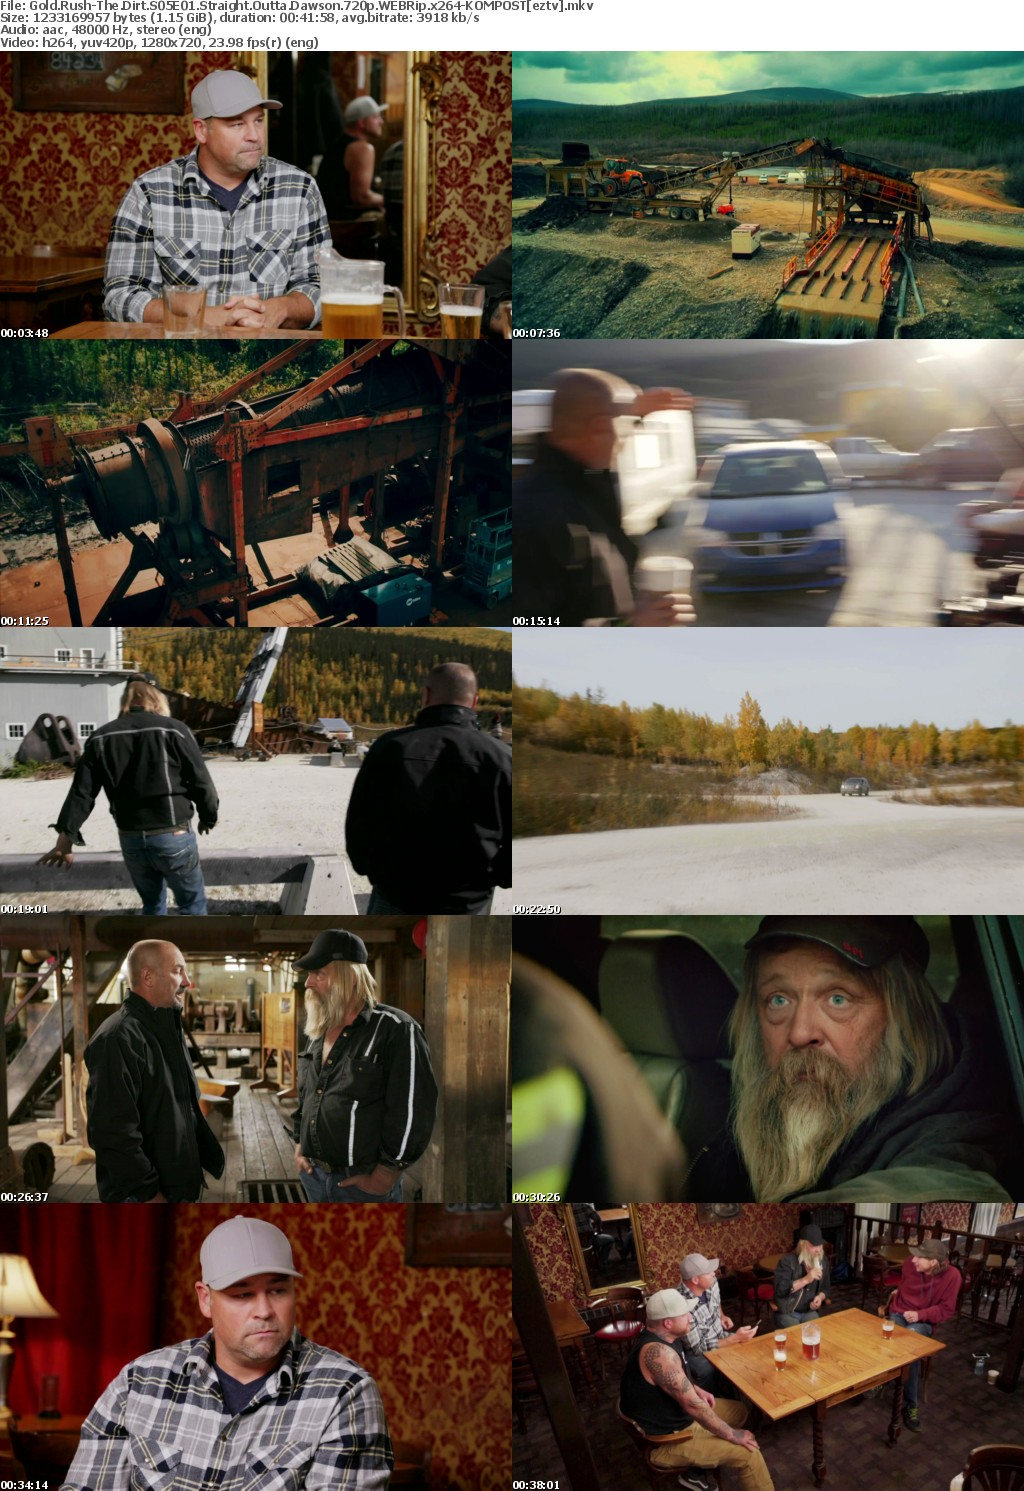 Gold Rush-The Dirt S05E01 Straight Outta Dawson 720p WEBRip x264-KOMPOST